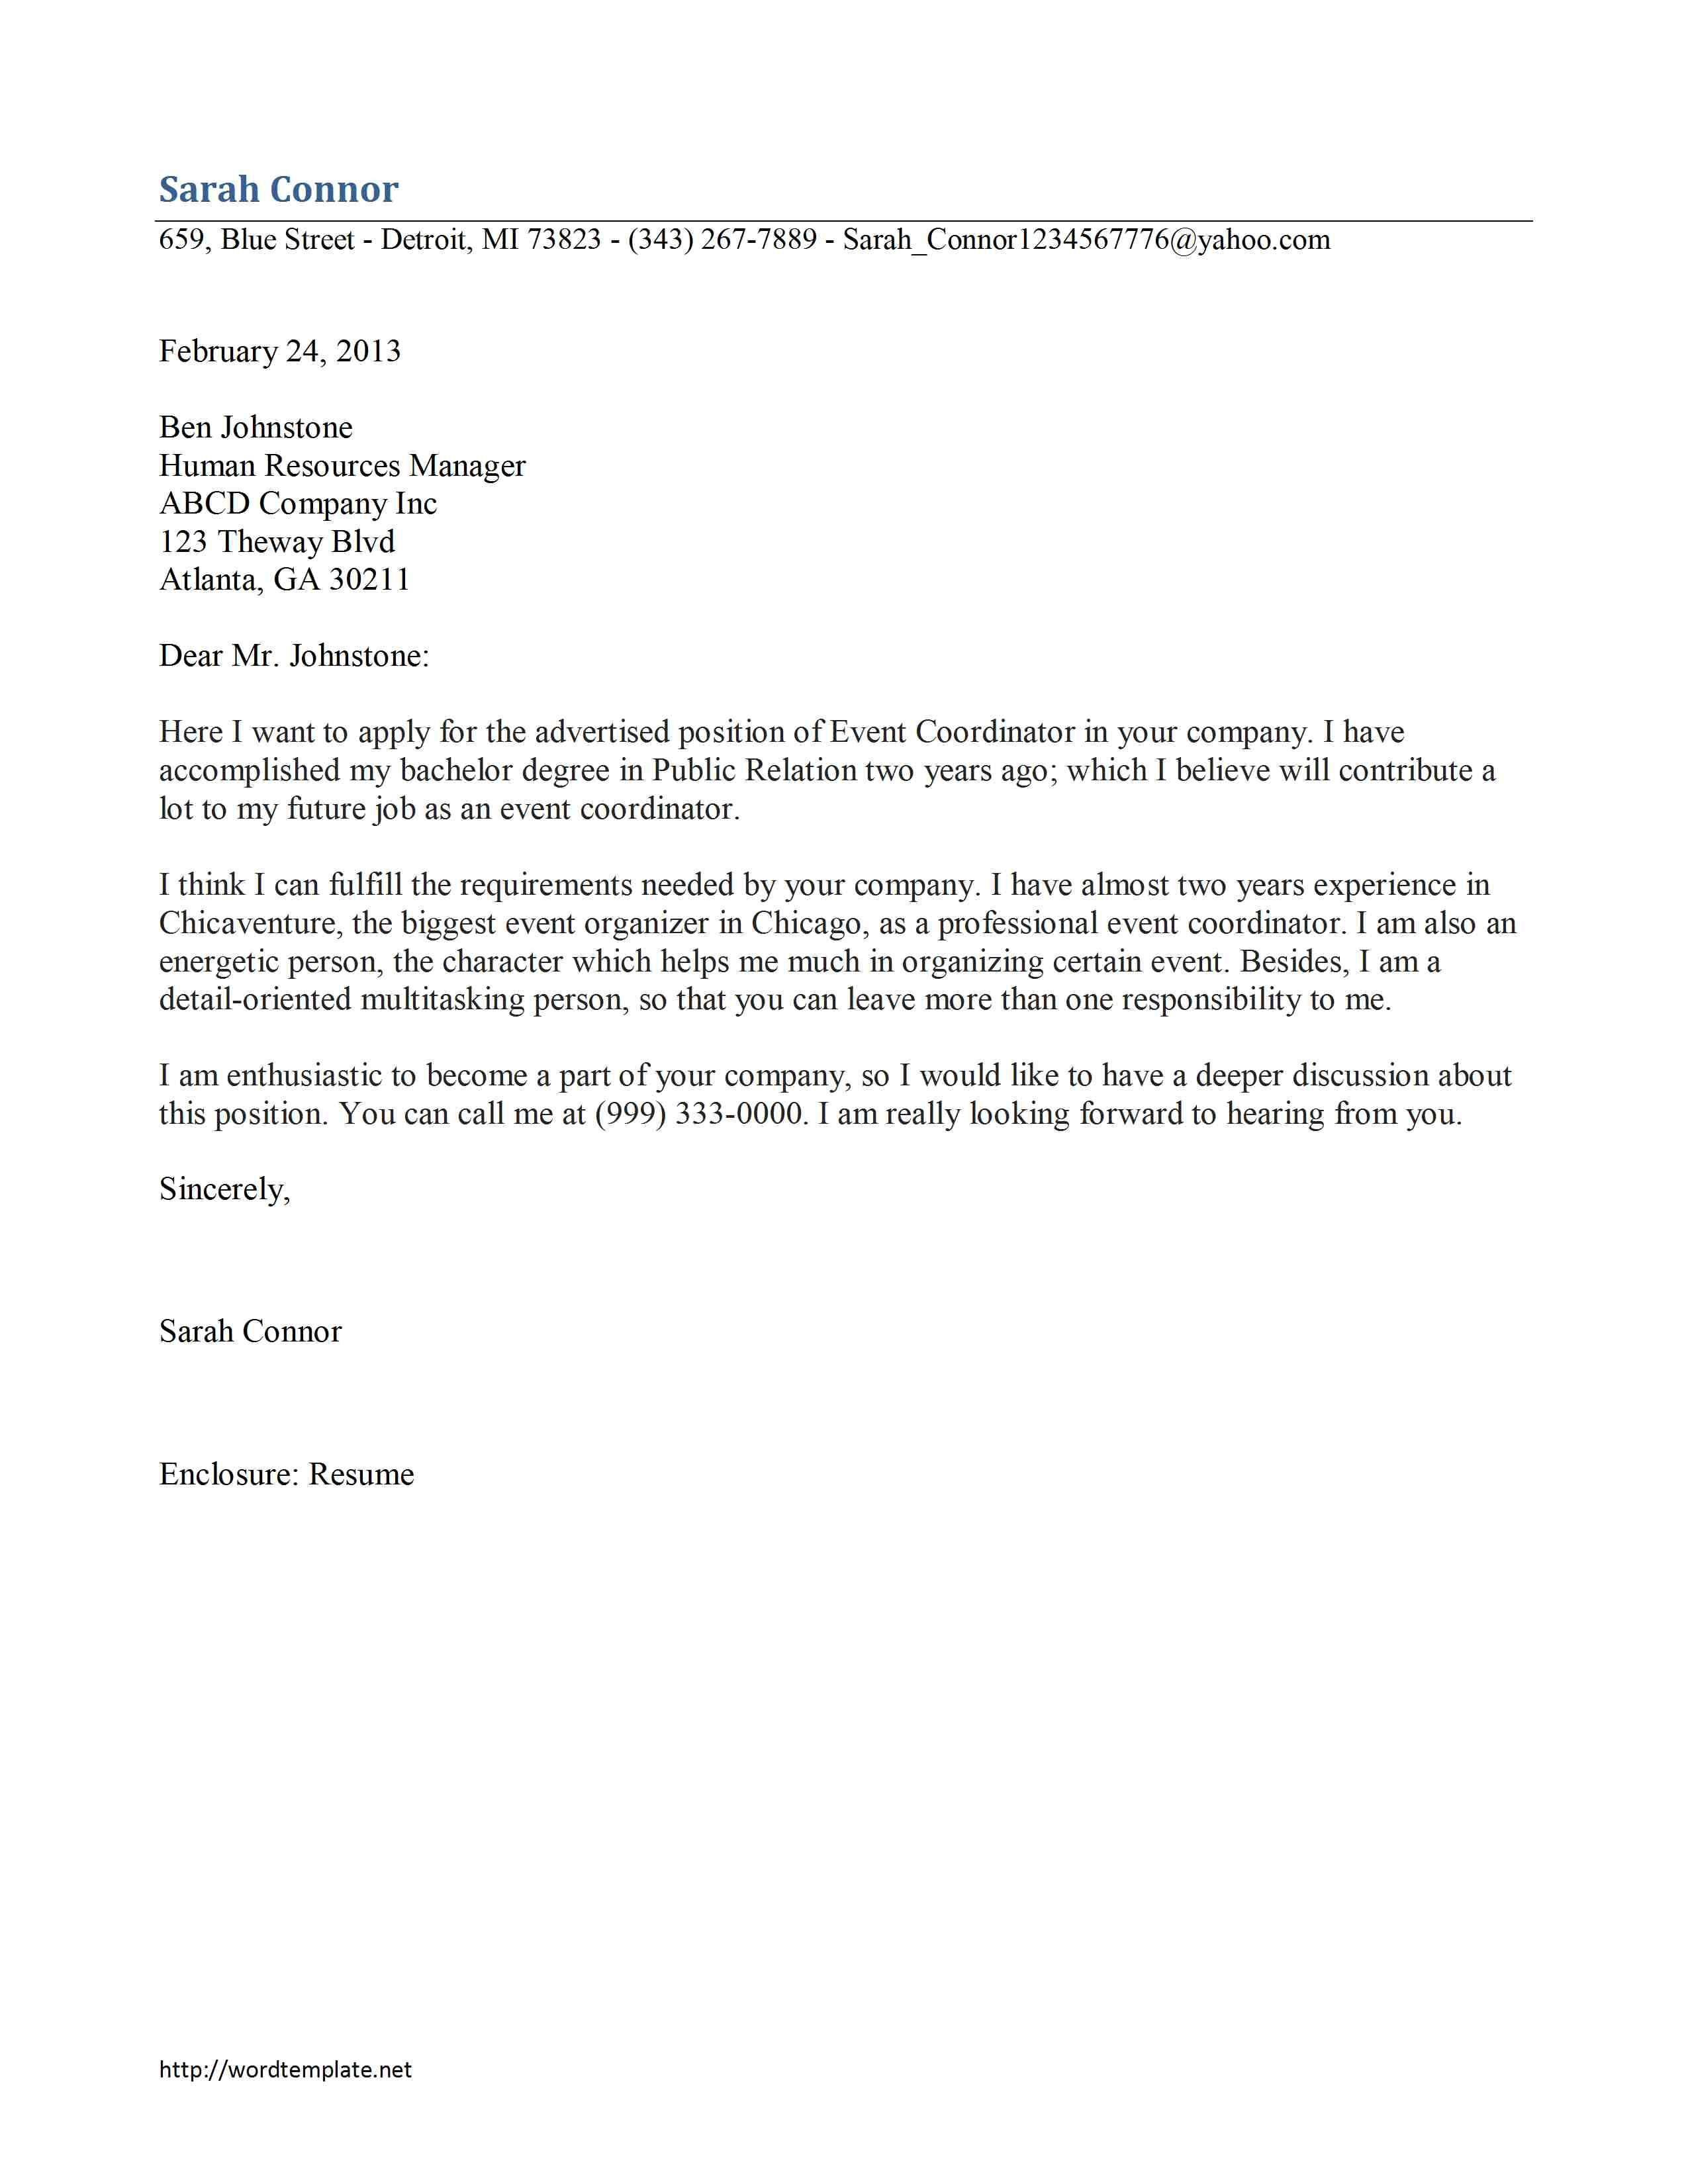 event coordinator cover letter template